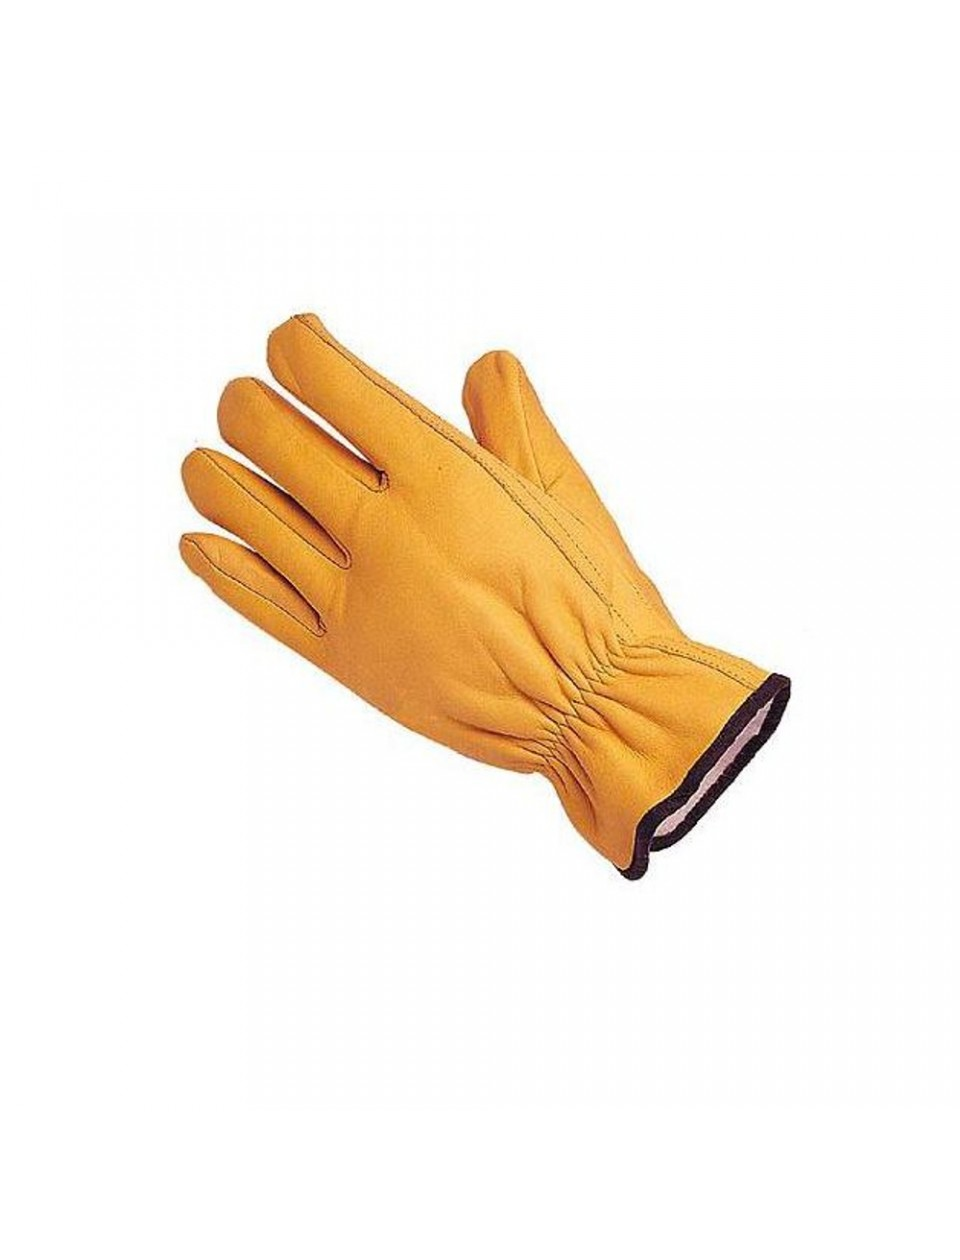 Yellow leather driving gloves - Lined Leather Driving Gloves Yellow Cowhide